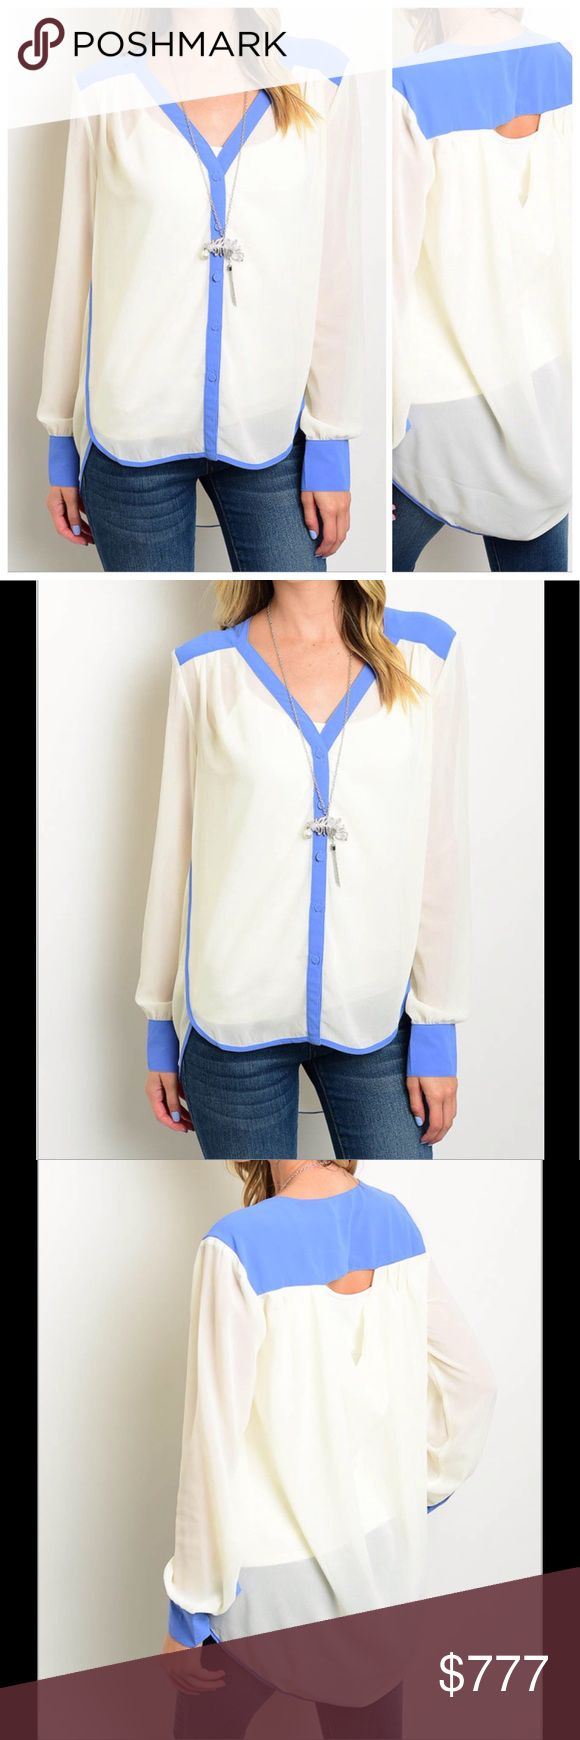 COMING SOON Sky Blue Cream Long sleeve top features a relaxed fit and a contrast colored trim. 100% polyester. NWOT from wholesaler. Check out my other items for a bundle discount. PRICE FIRM UNLESS BUNDLED!! Tops Blouses